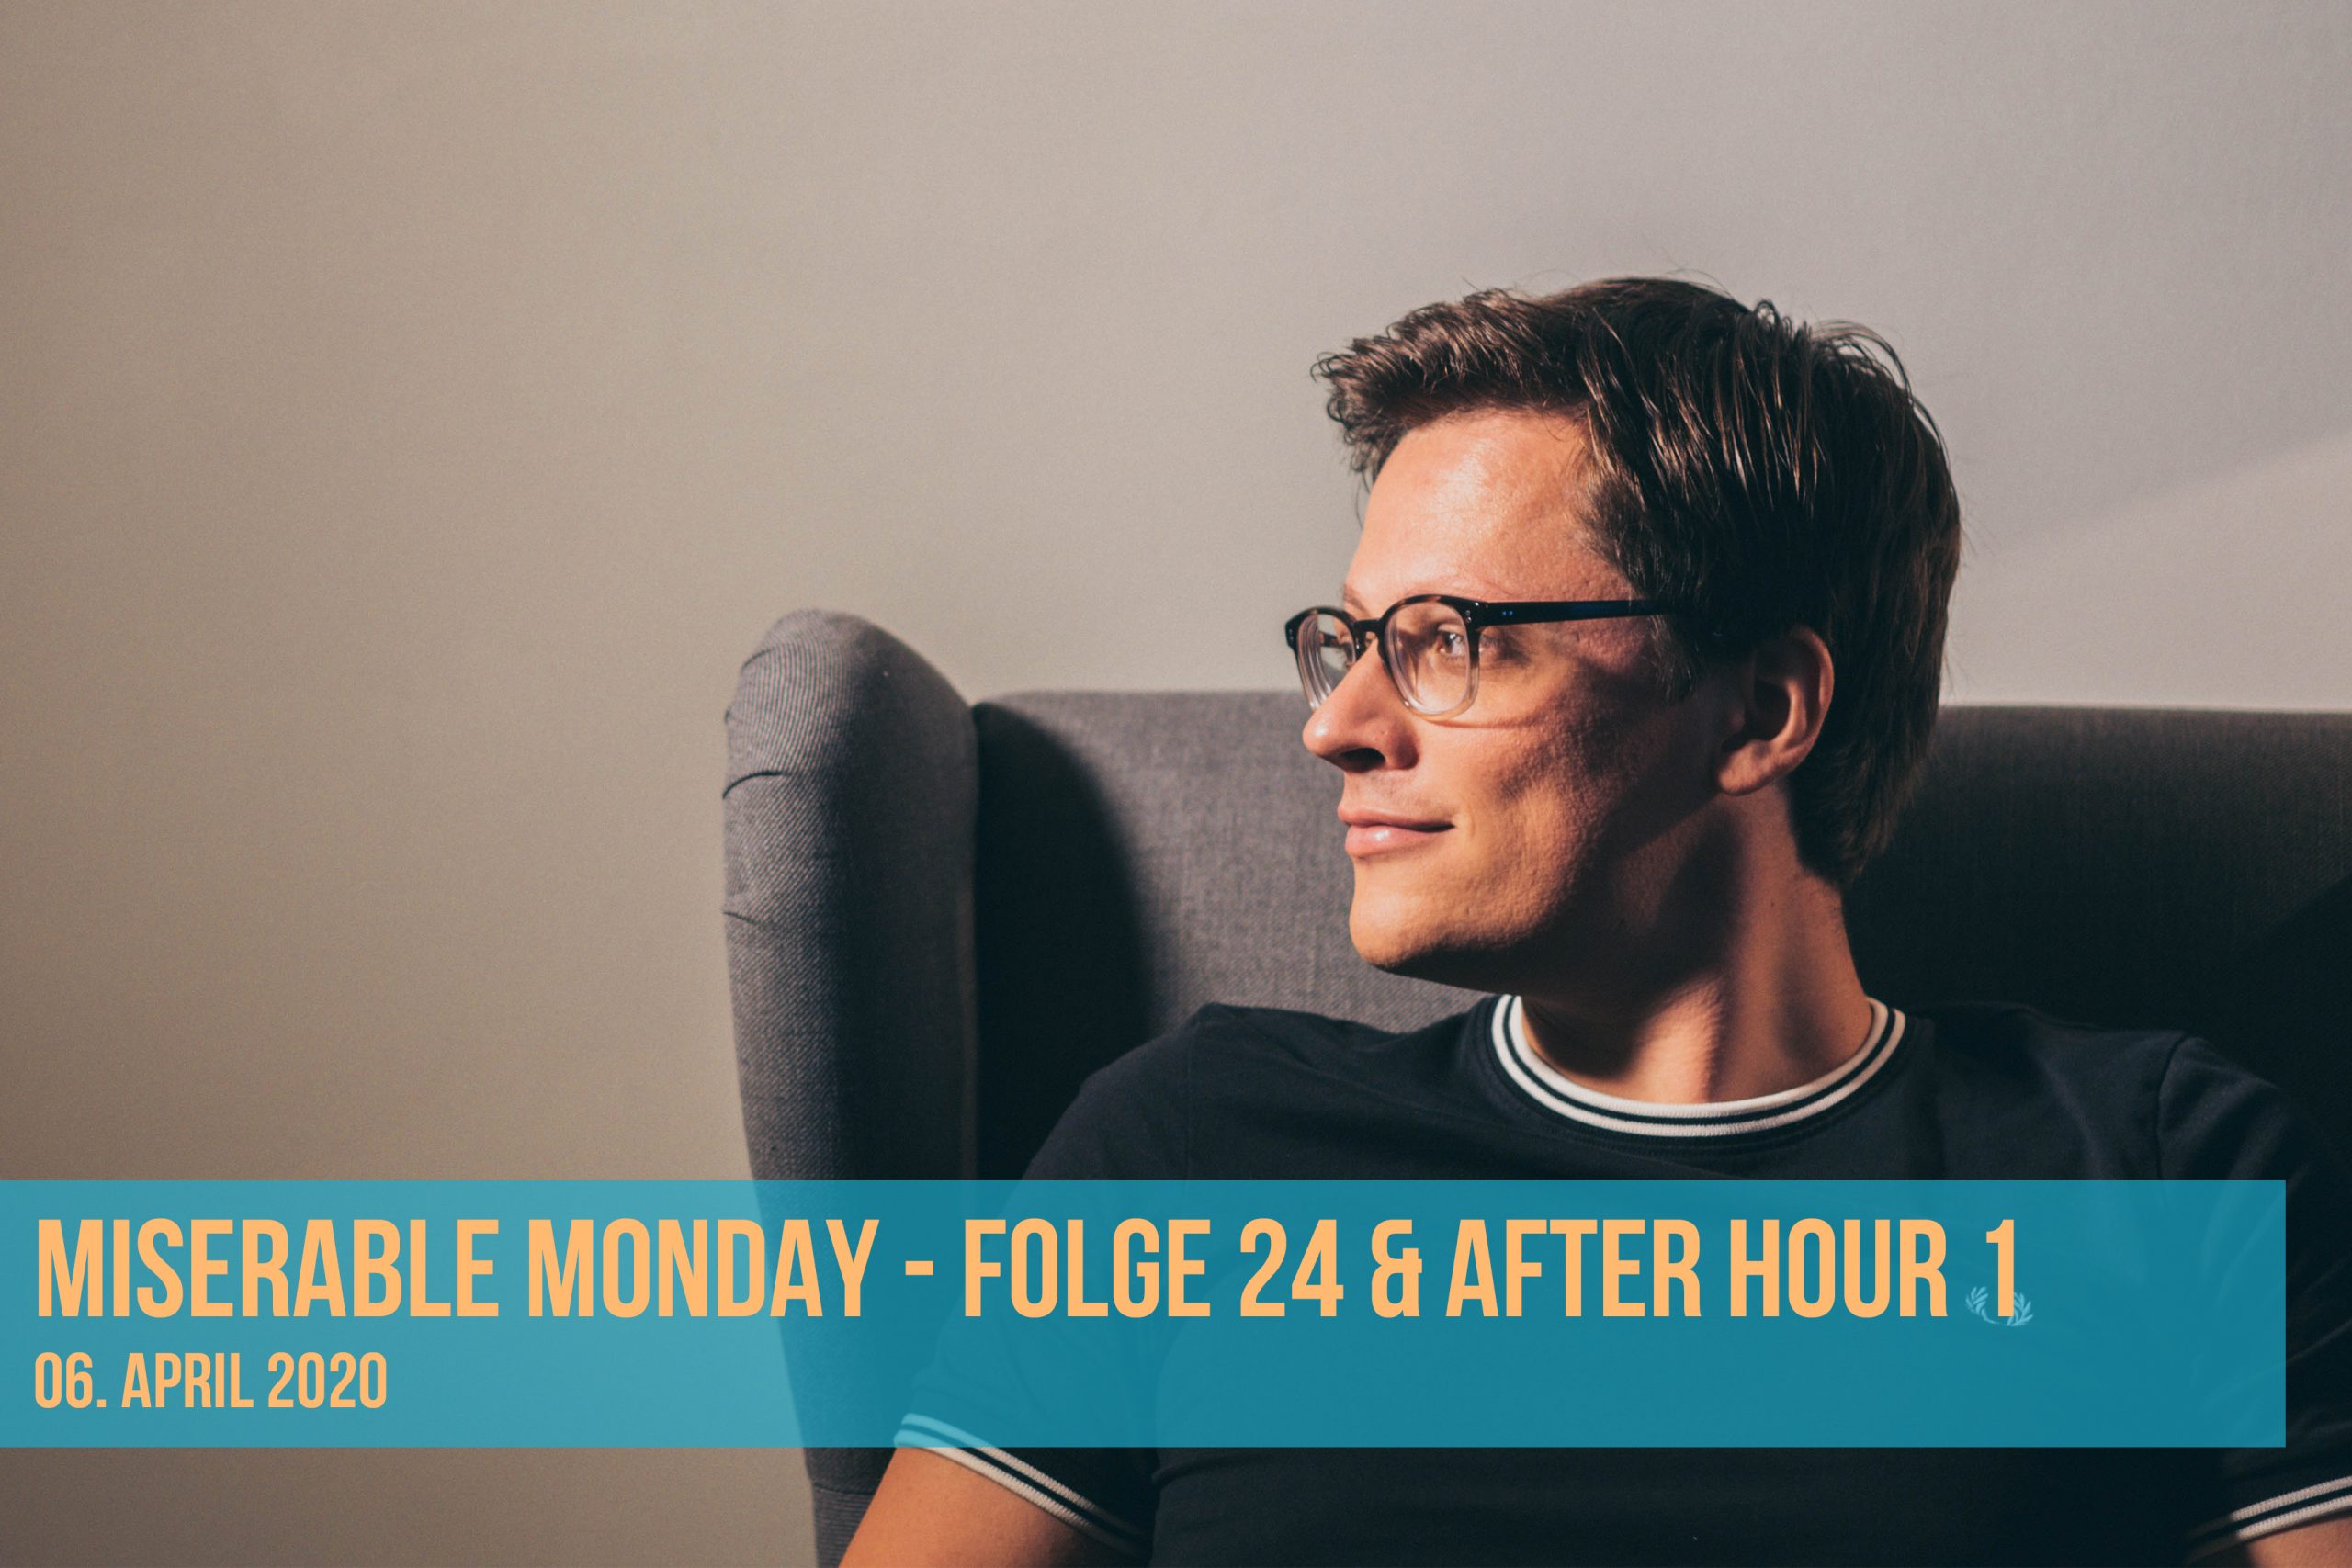 Miserable Monday - Folge 24 & After Hour 1 - 06/04/20